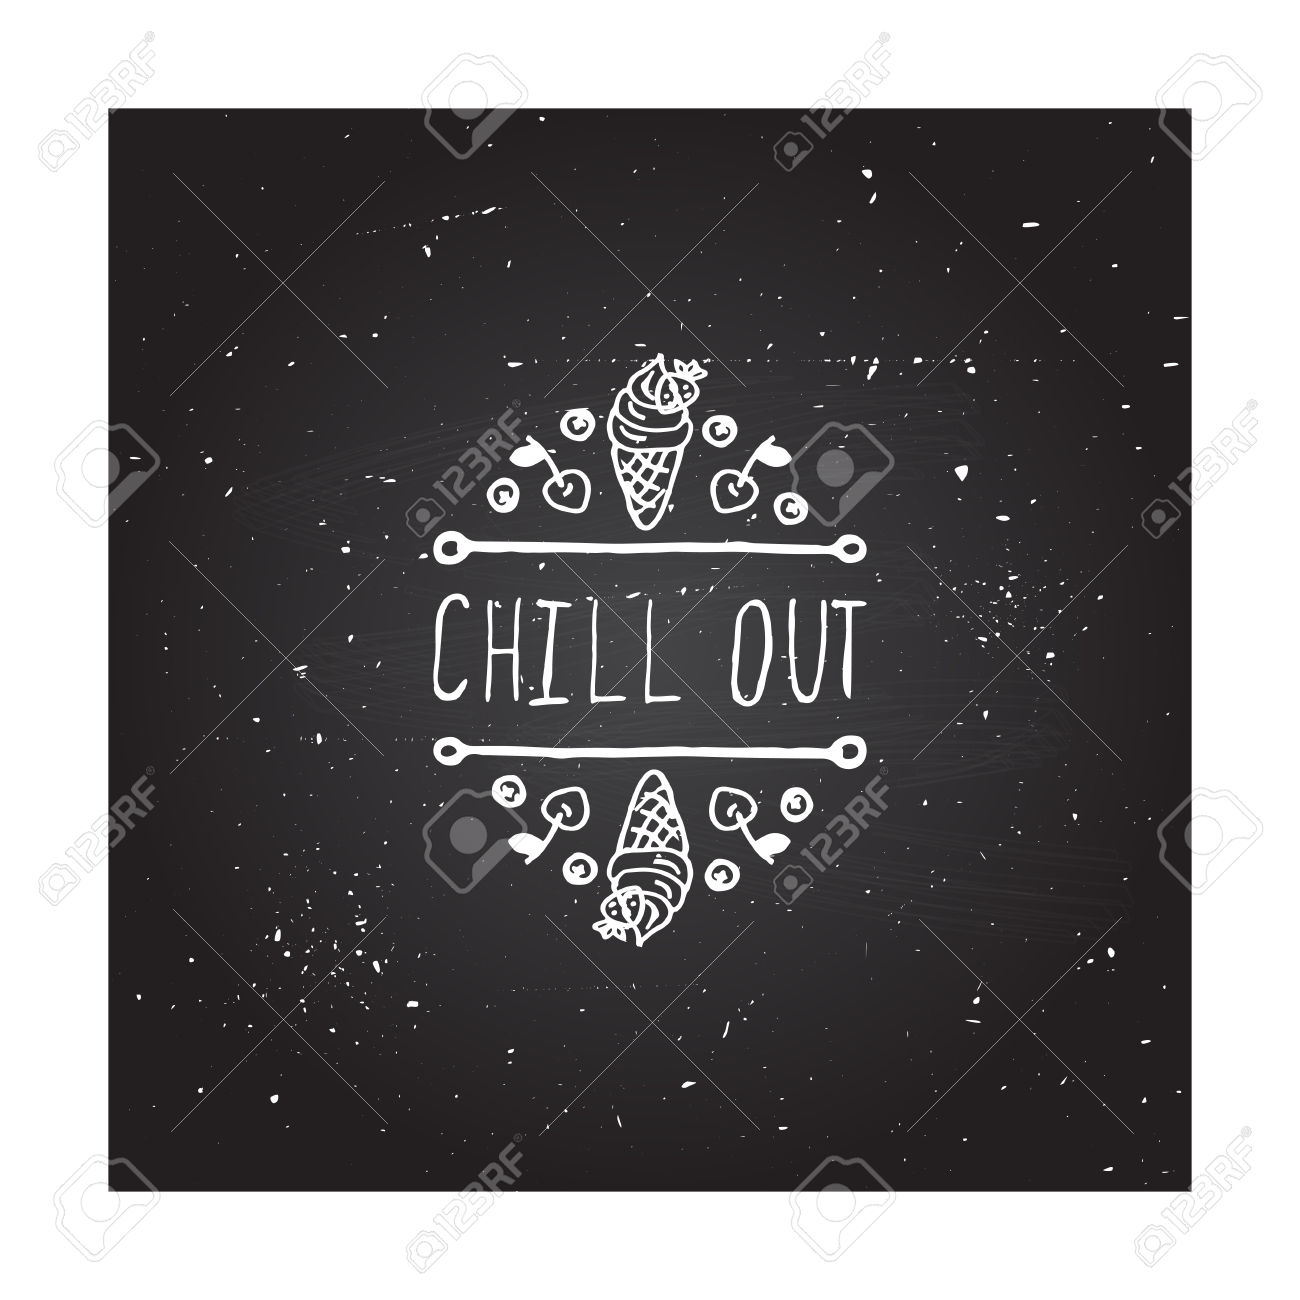 Chillout clipart #2